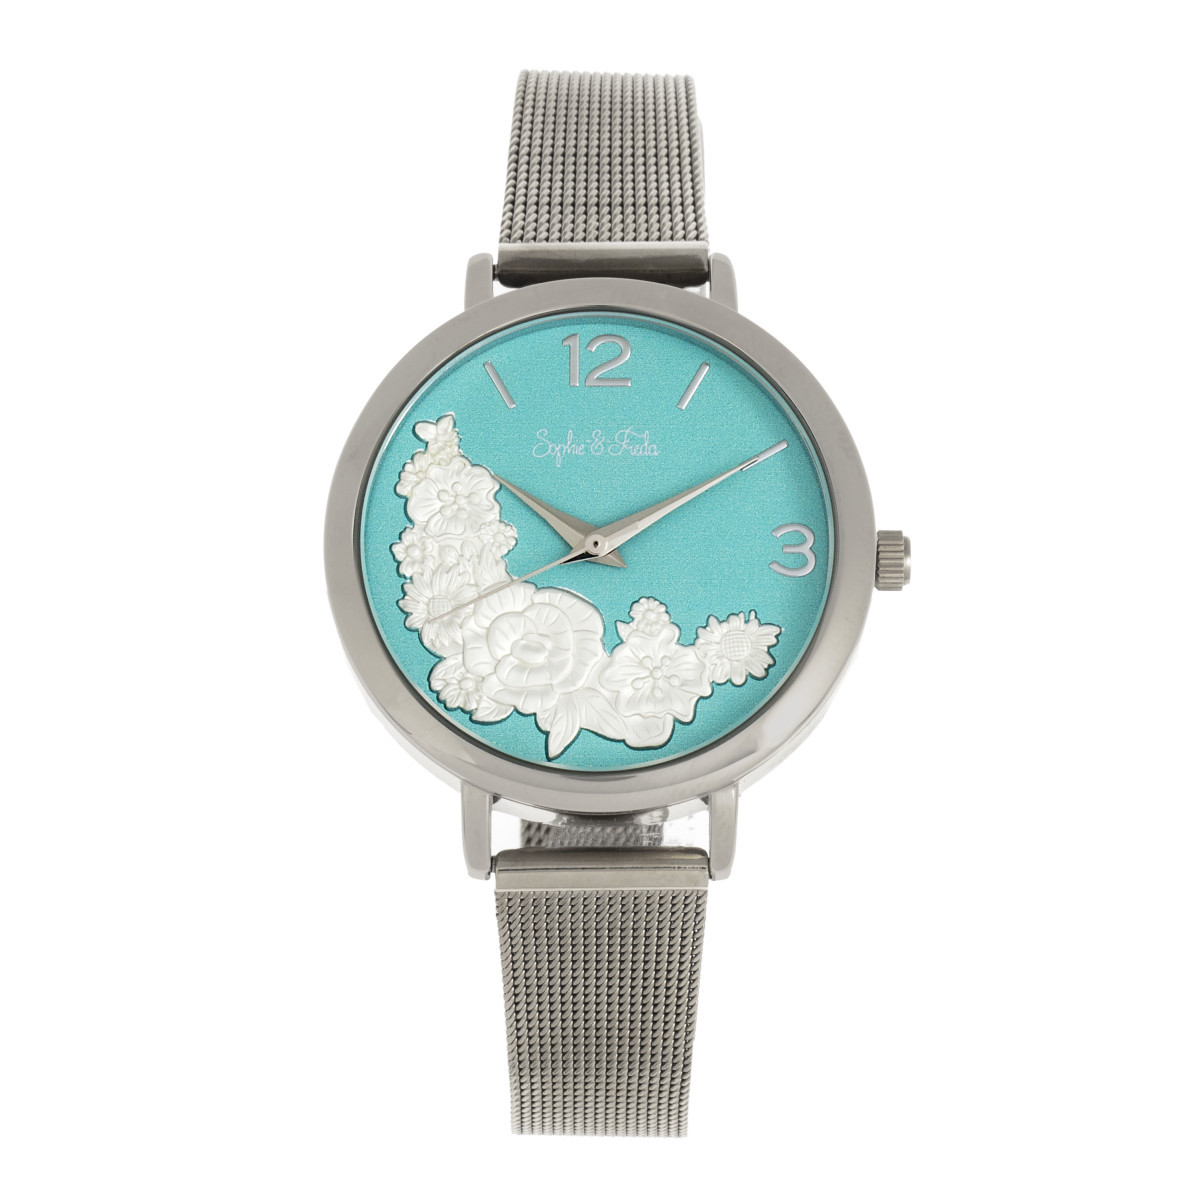 Primary image for Sophie and Freda Lexington Bracelet Watch - Silver/Turquoise